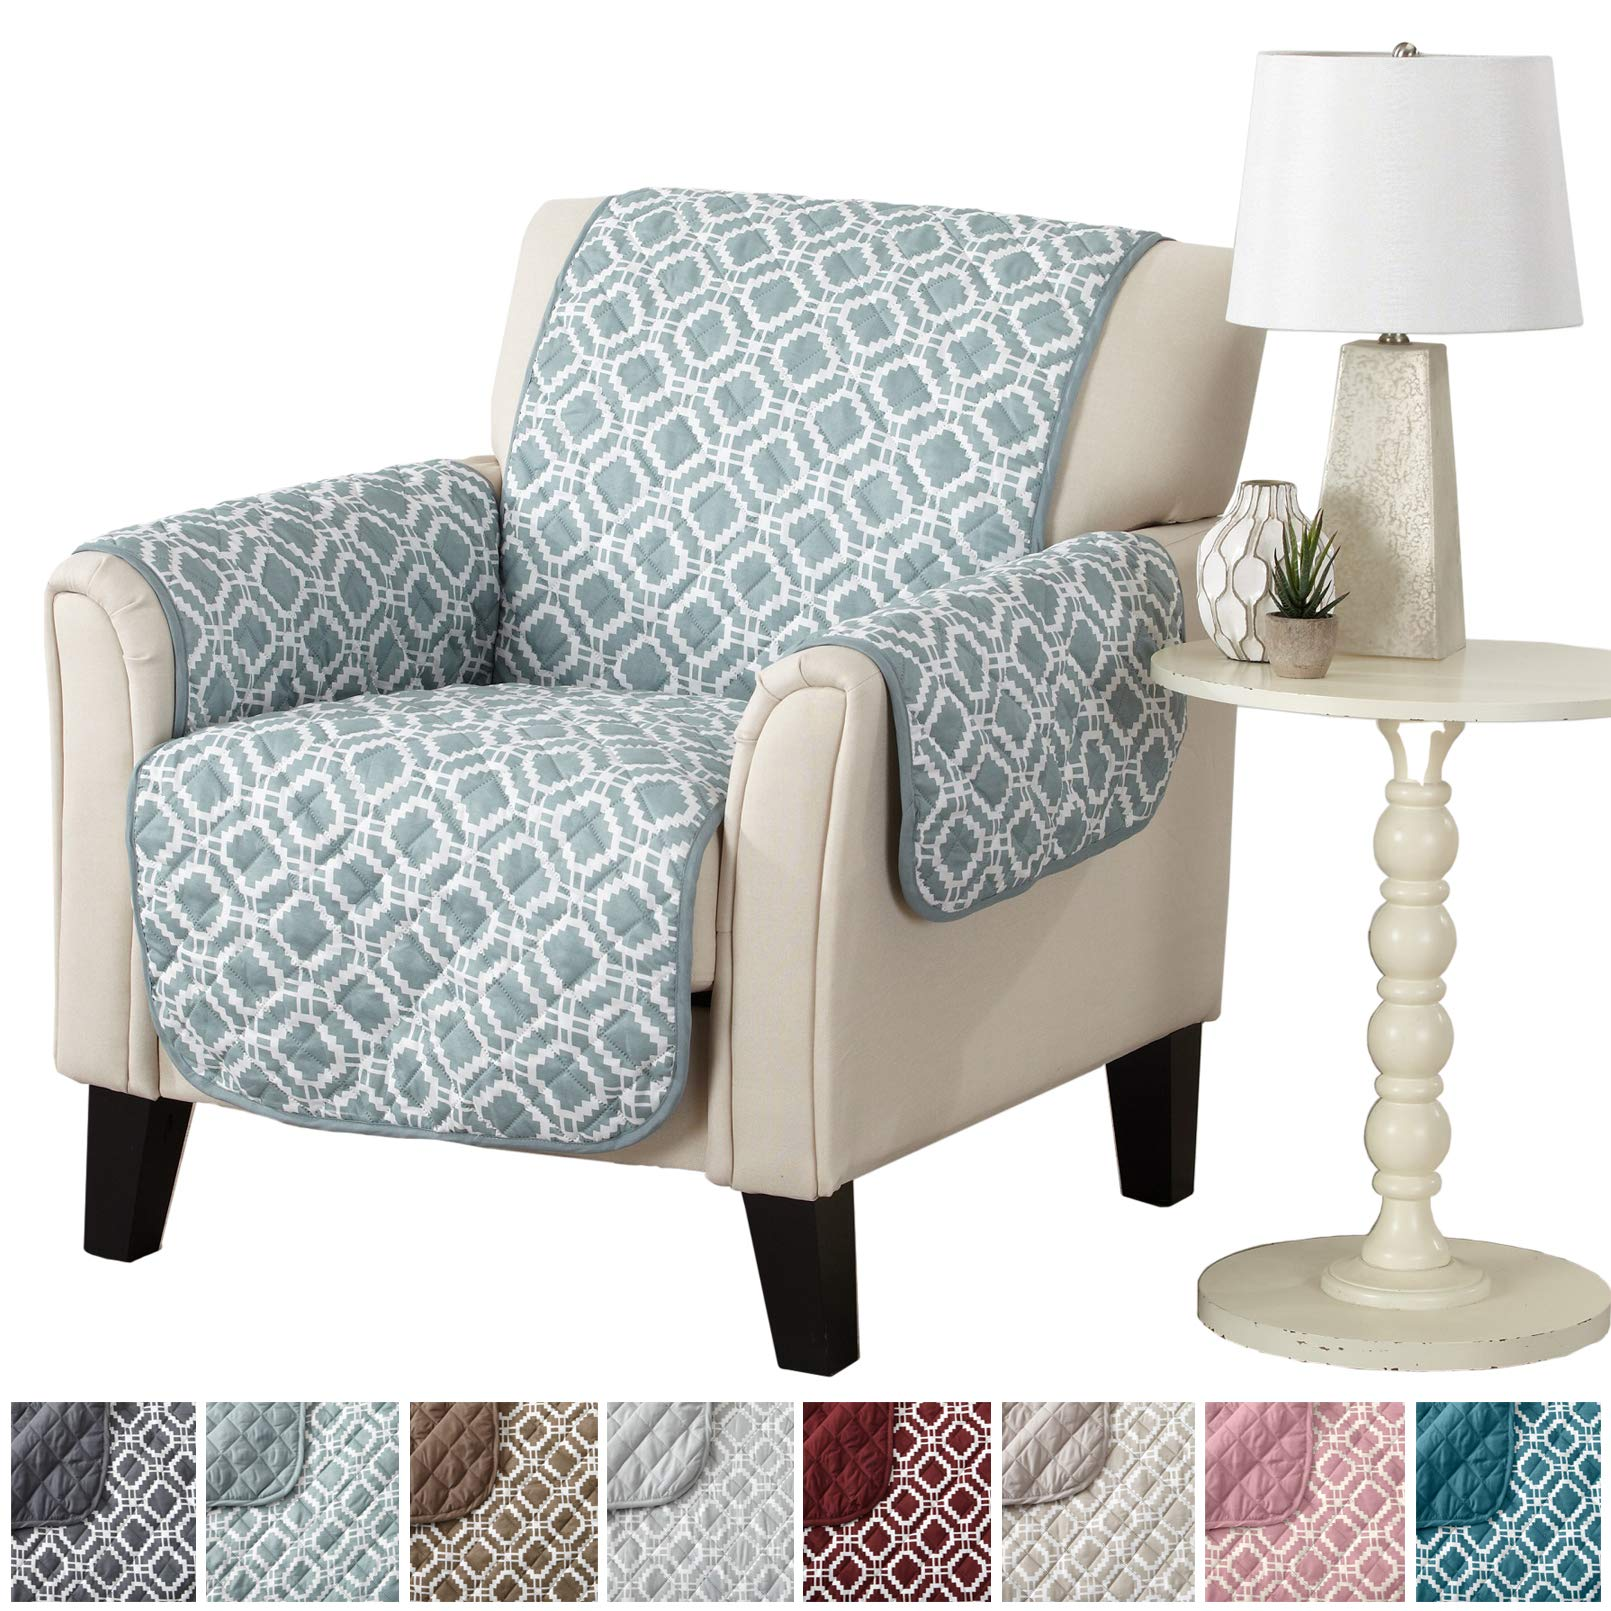 Modern Printed Reversible Stain Resistant Furniture Protector with Geometric Design. Perfect Cover for Pets and Kids. Adjustable Elastic Straps Included. Liliana Collection (Chair, Sea Blue Green) by Great Bay Home